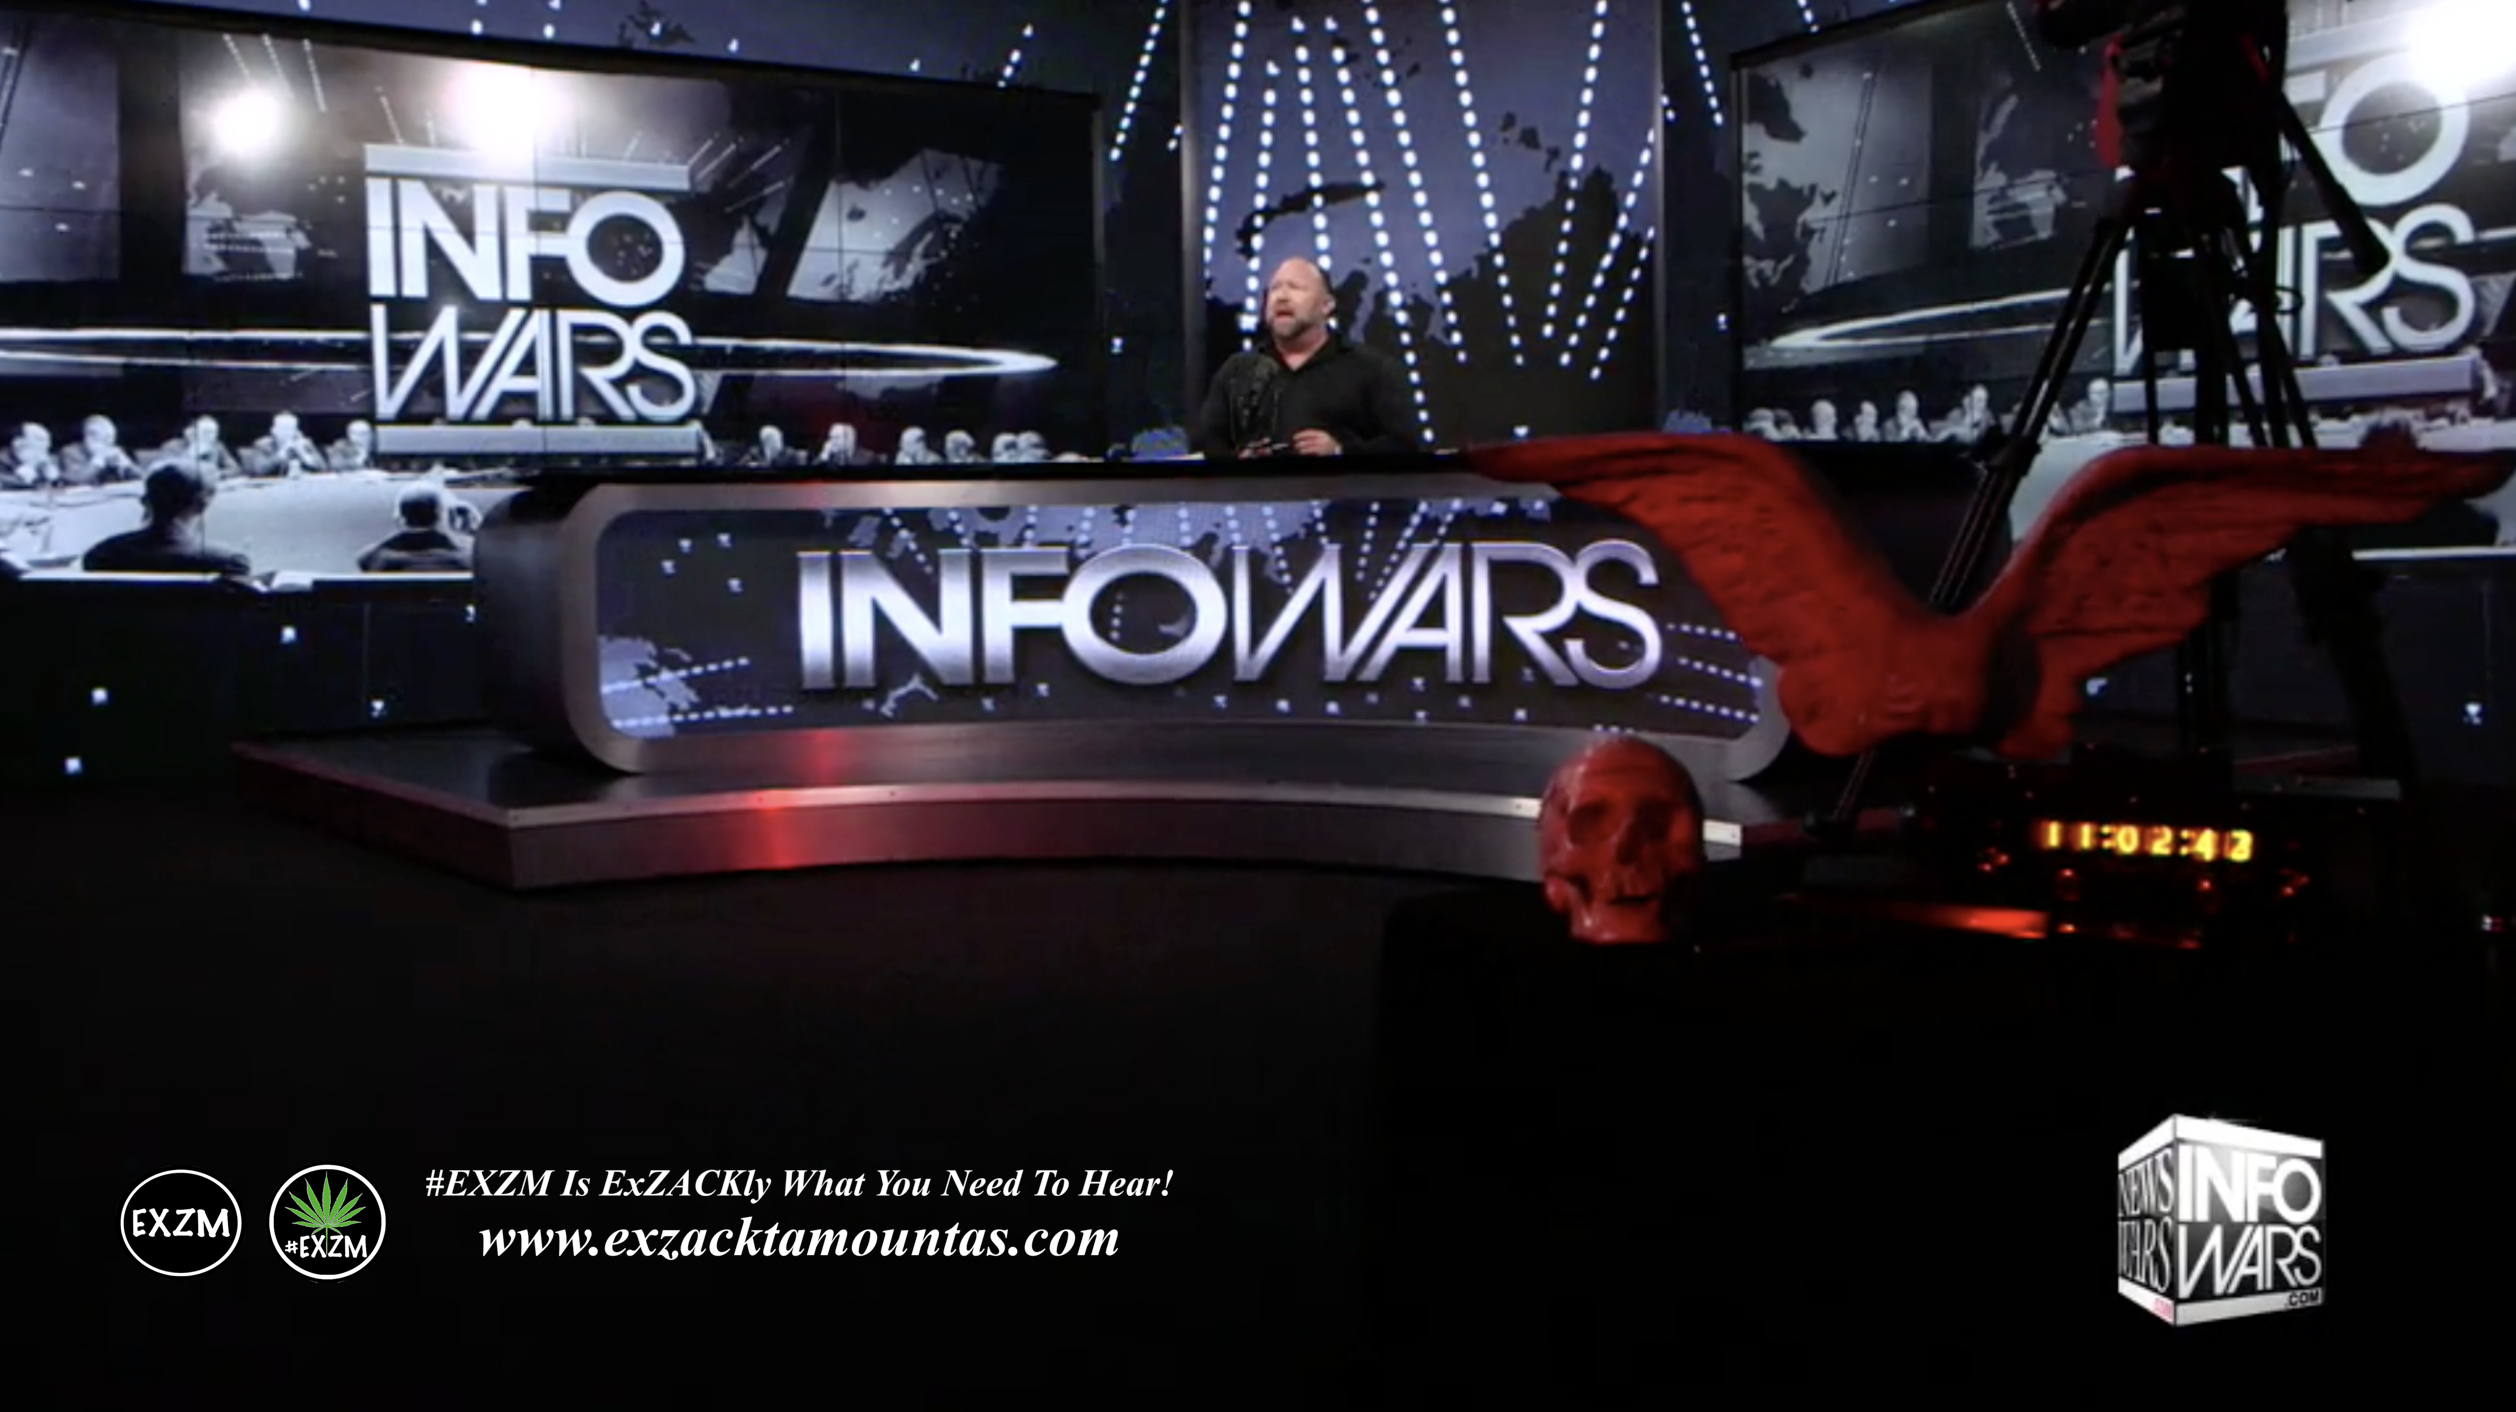 Alex Jones Live Infowars Studio Red Angel Wings Red Skull EXZM Zack Mount February 23rd 2021 copy